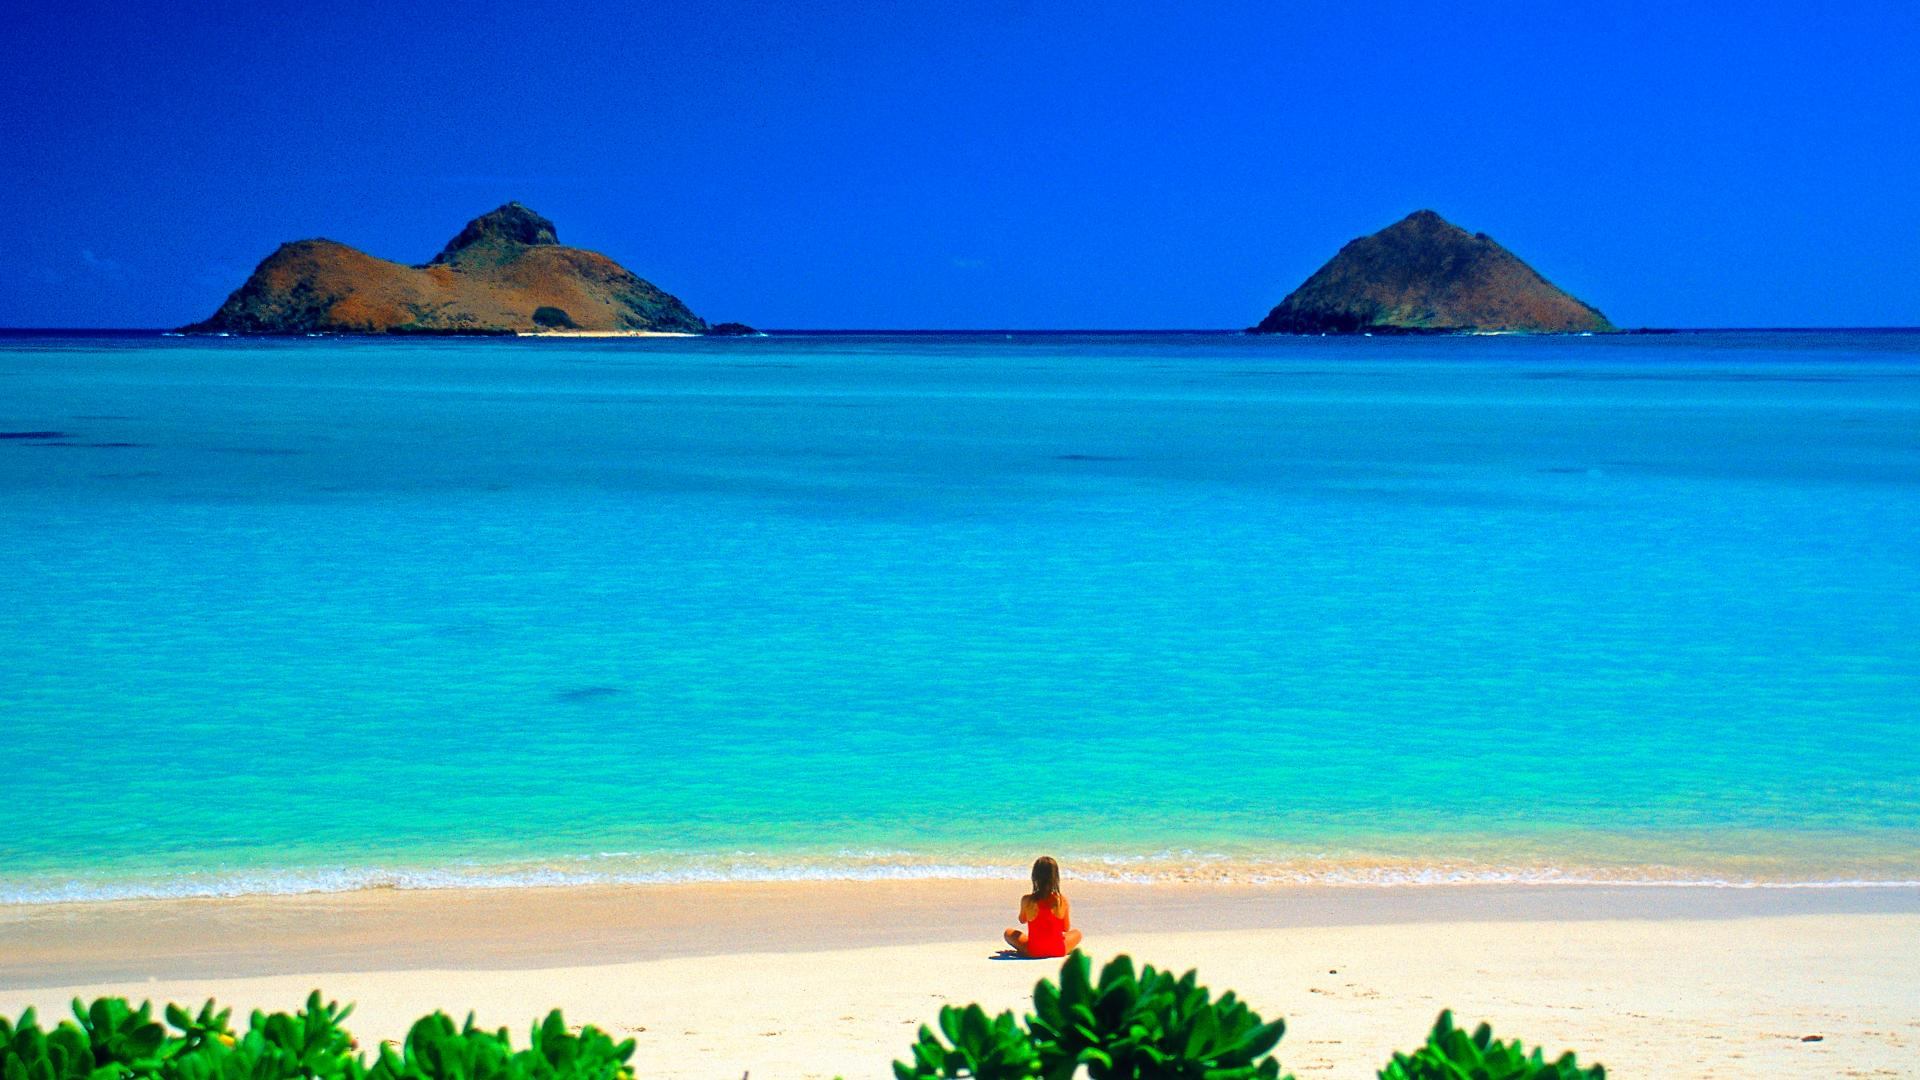 Beach Desktop Backgrounds and Wallpaper   Lanikai Beach Oahu Hawaii 1920x1080